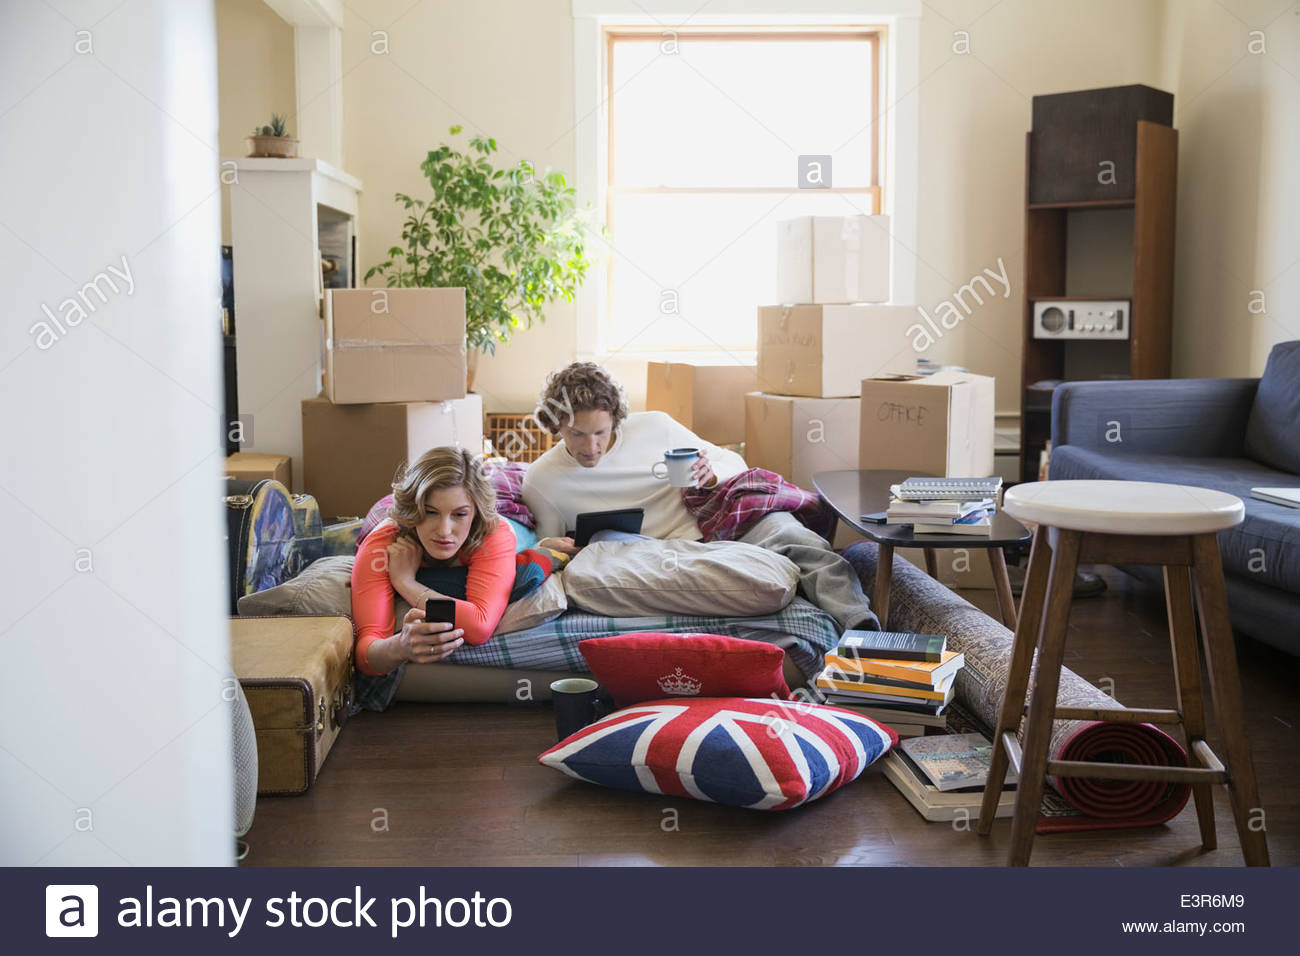 Couple using technology surrounded by moving boxes - Stock Image